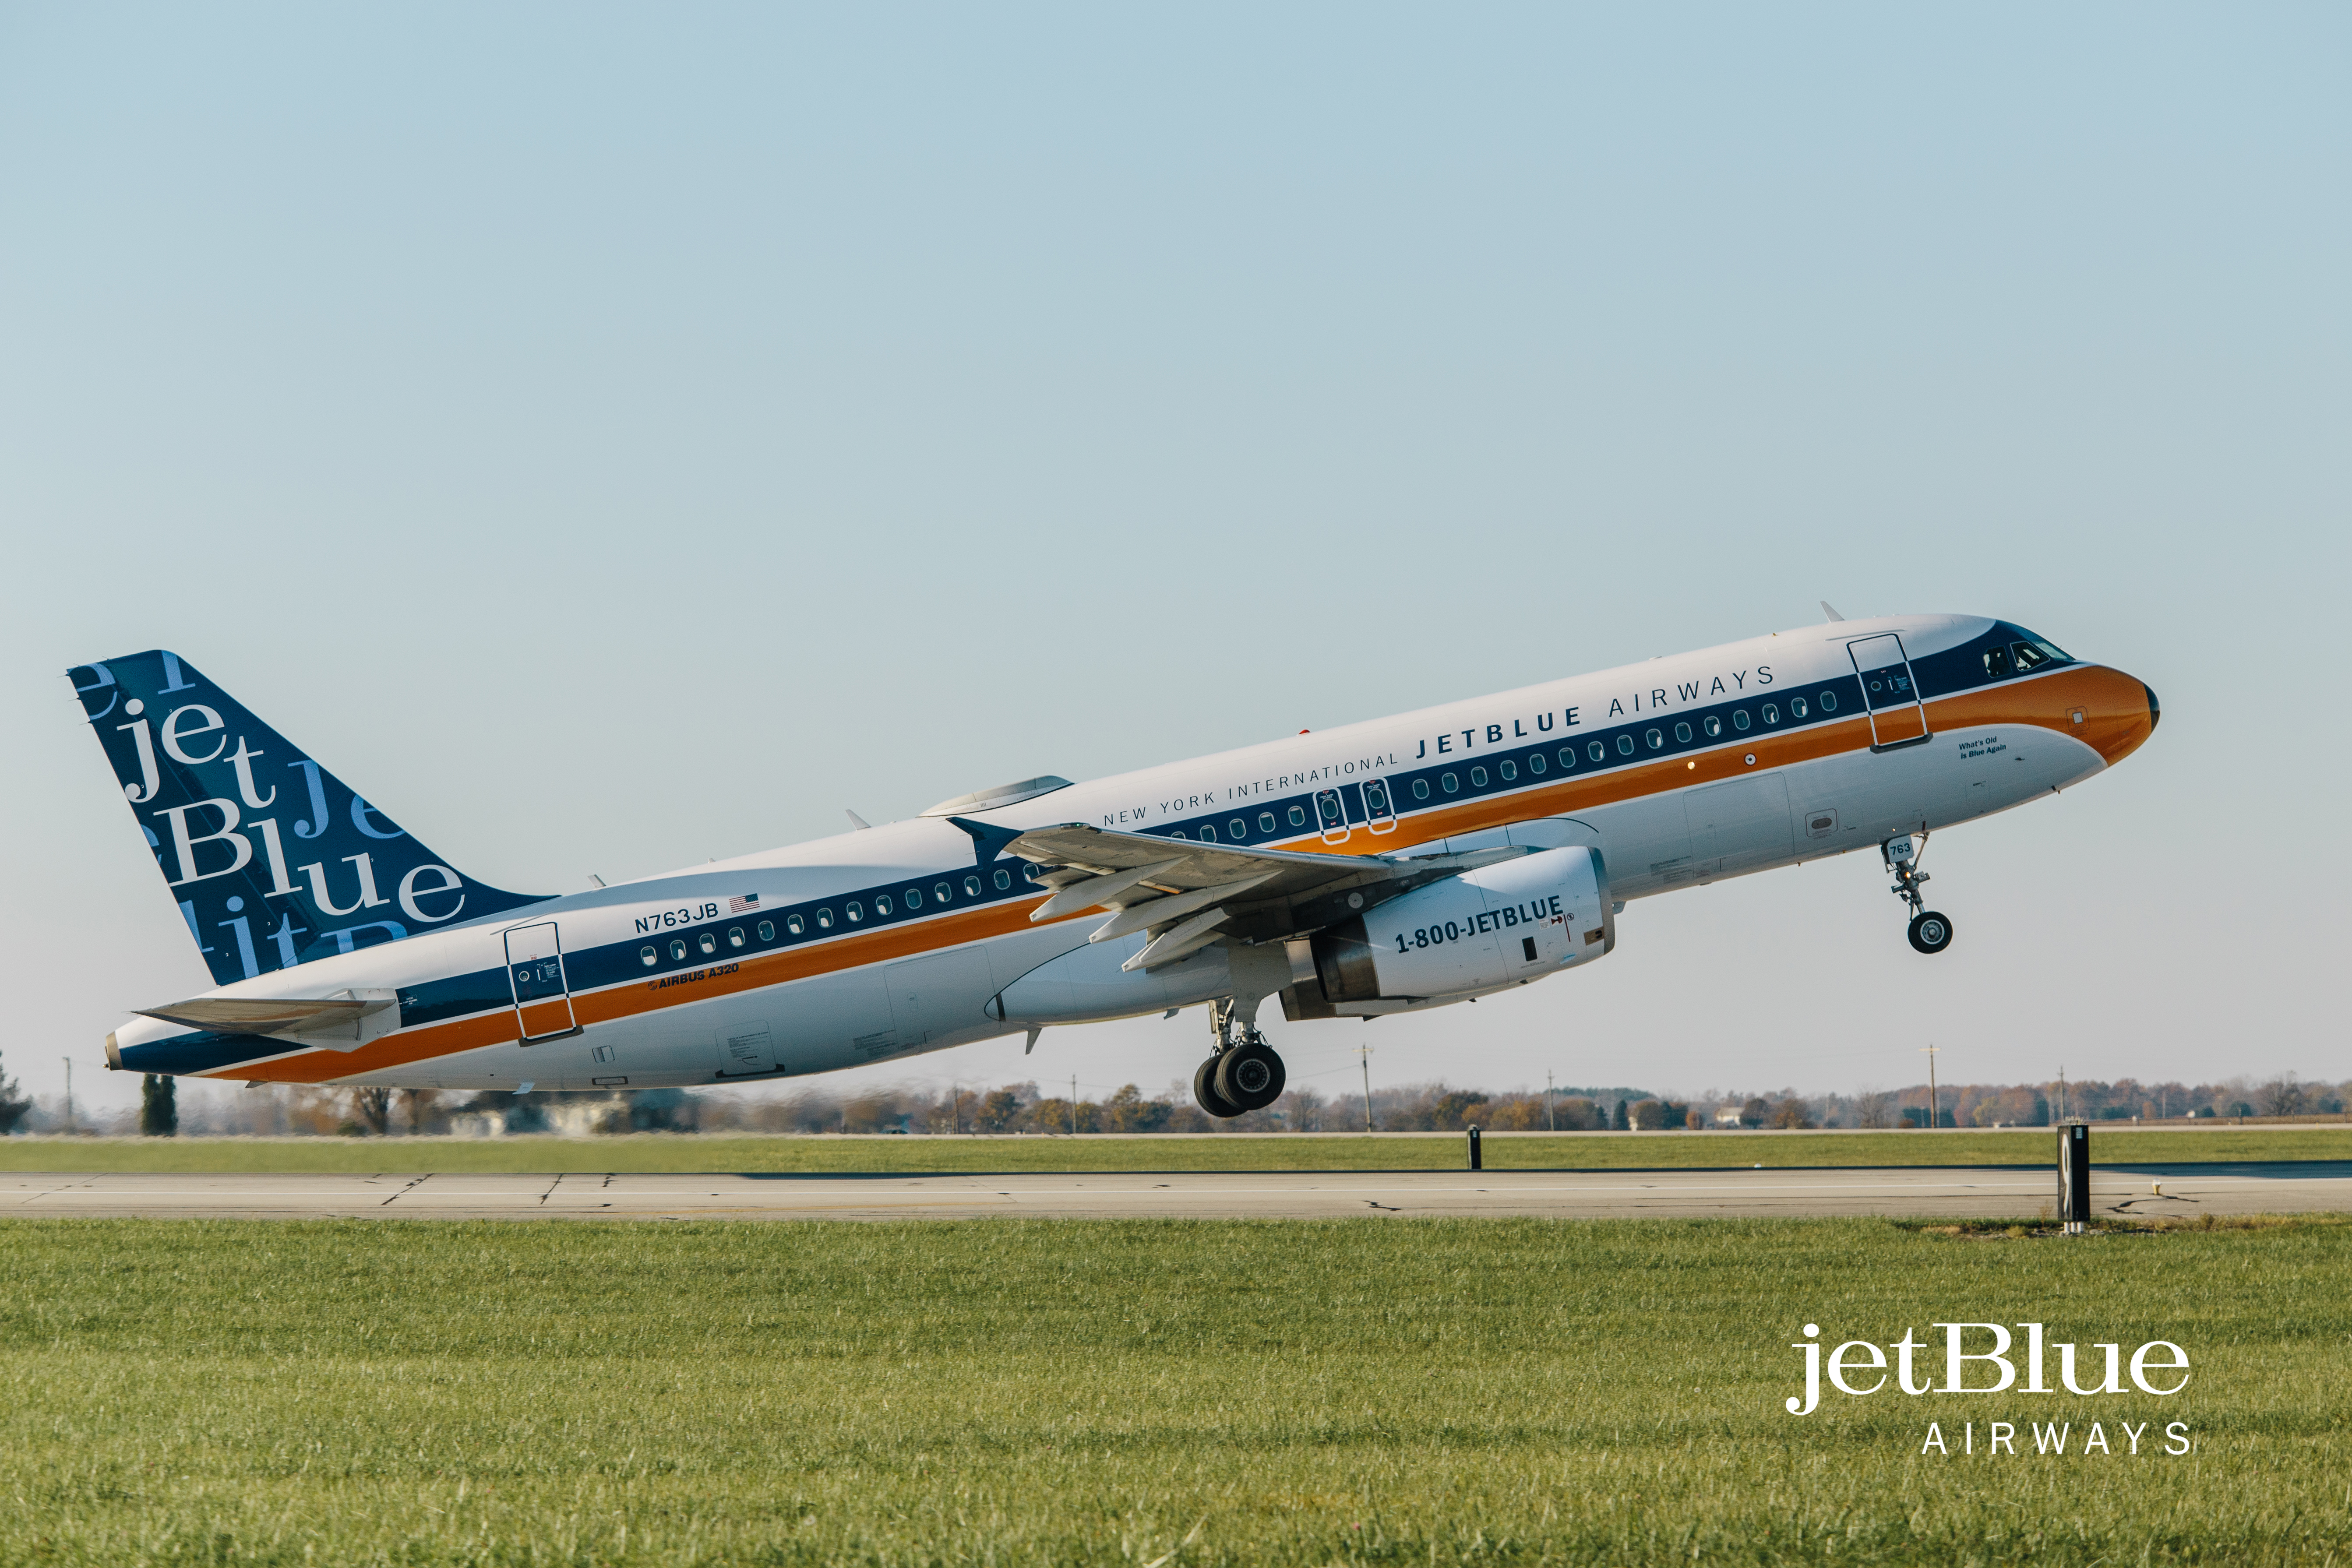 jetblue celebrates the jet age with new retrojet design and 1960s